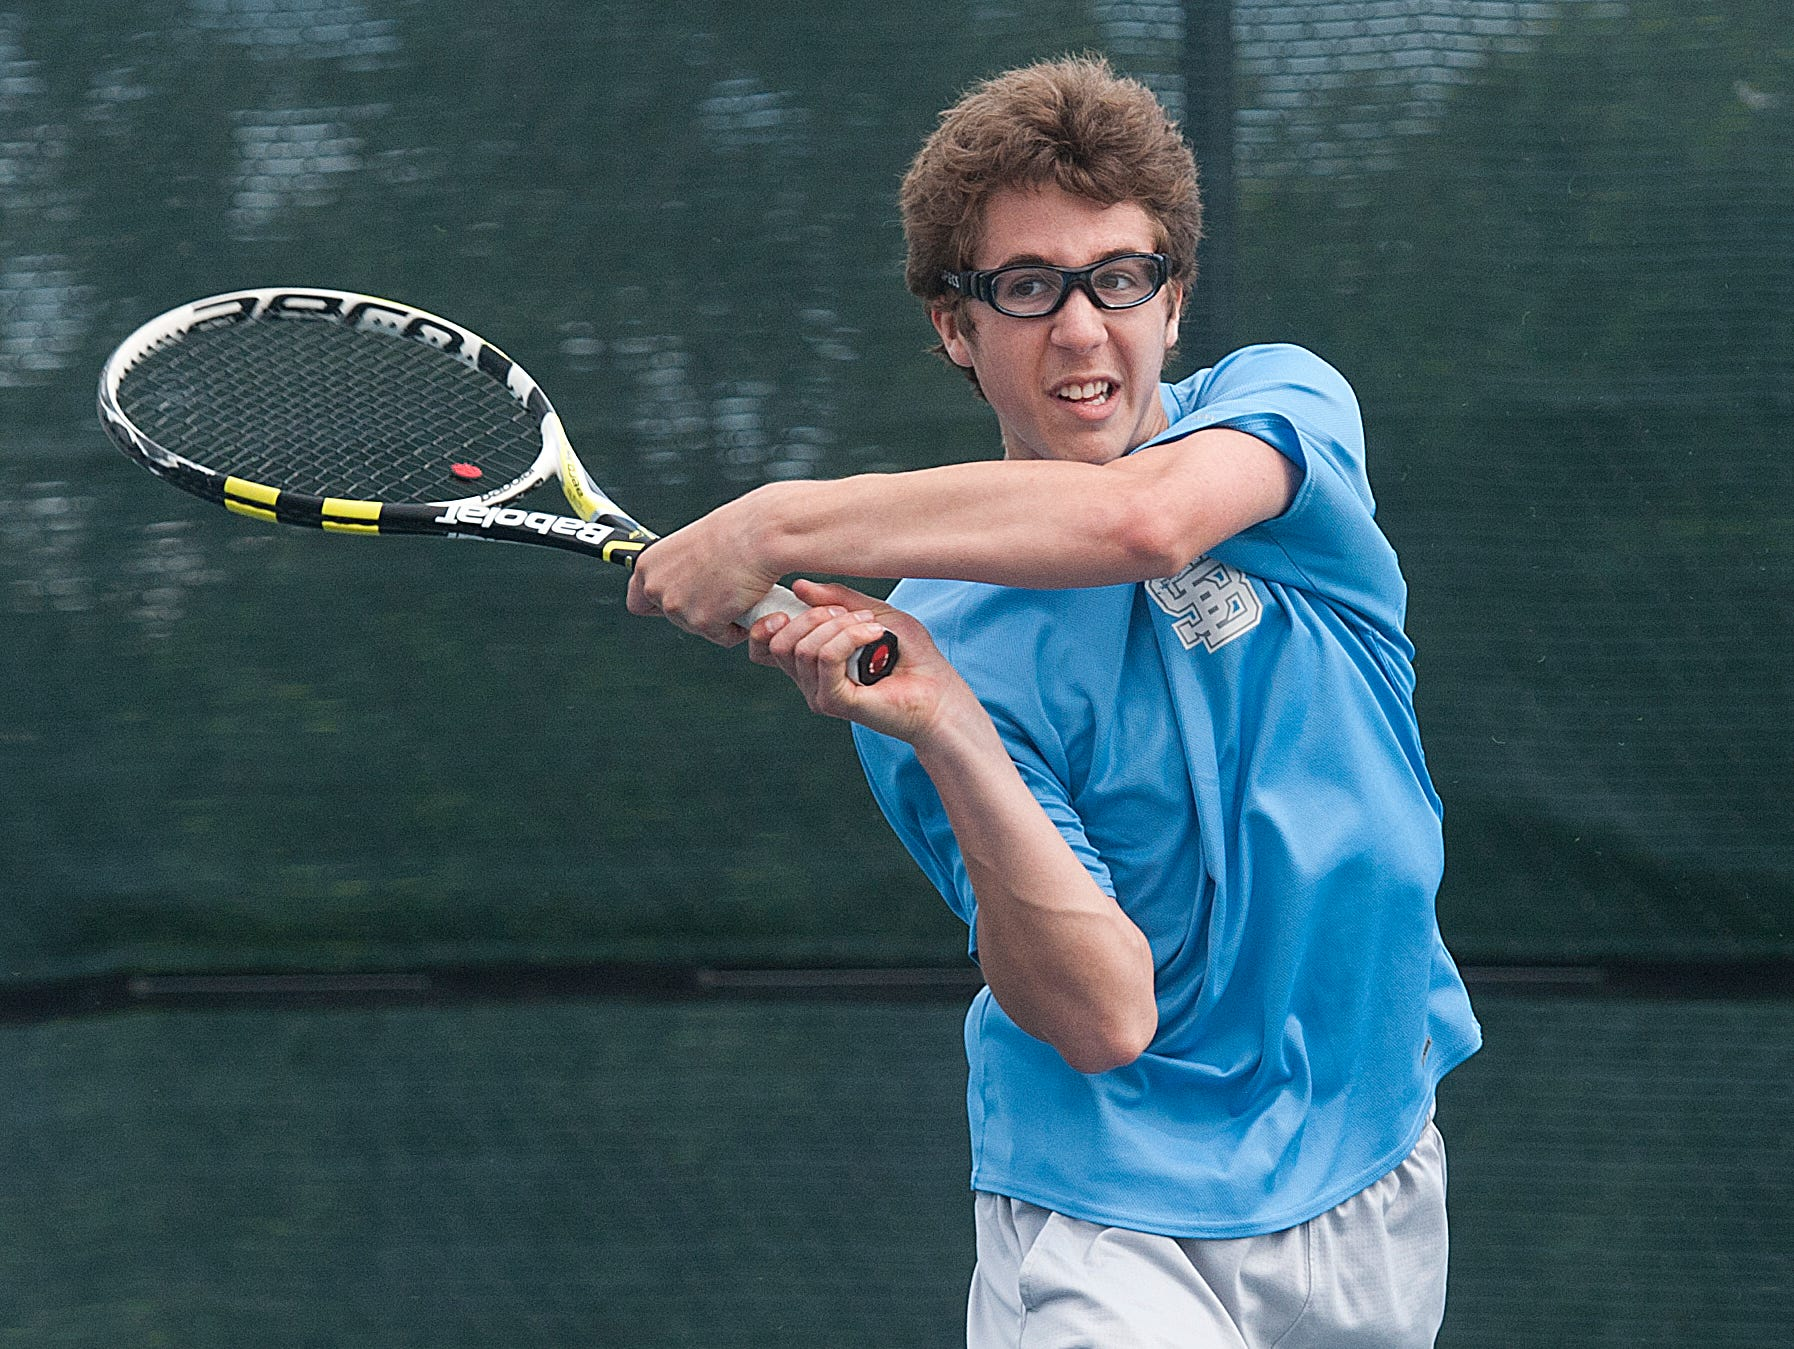 South Burlington's Marco Cepeda hits the ball against a serve by Stowe's Sam Salvas at the boys high school tennis championship last season.